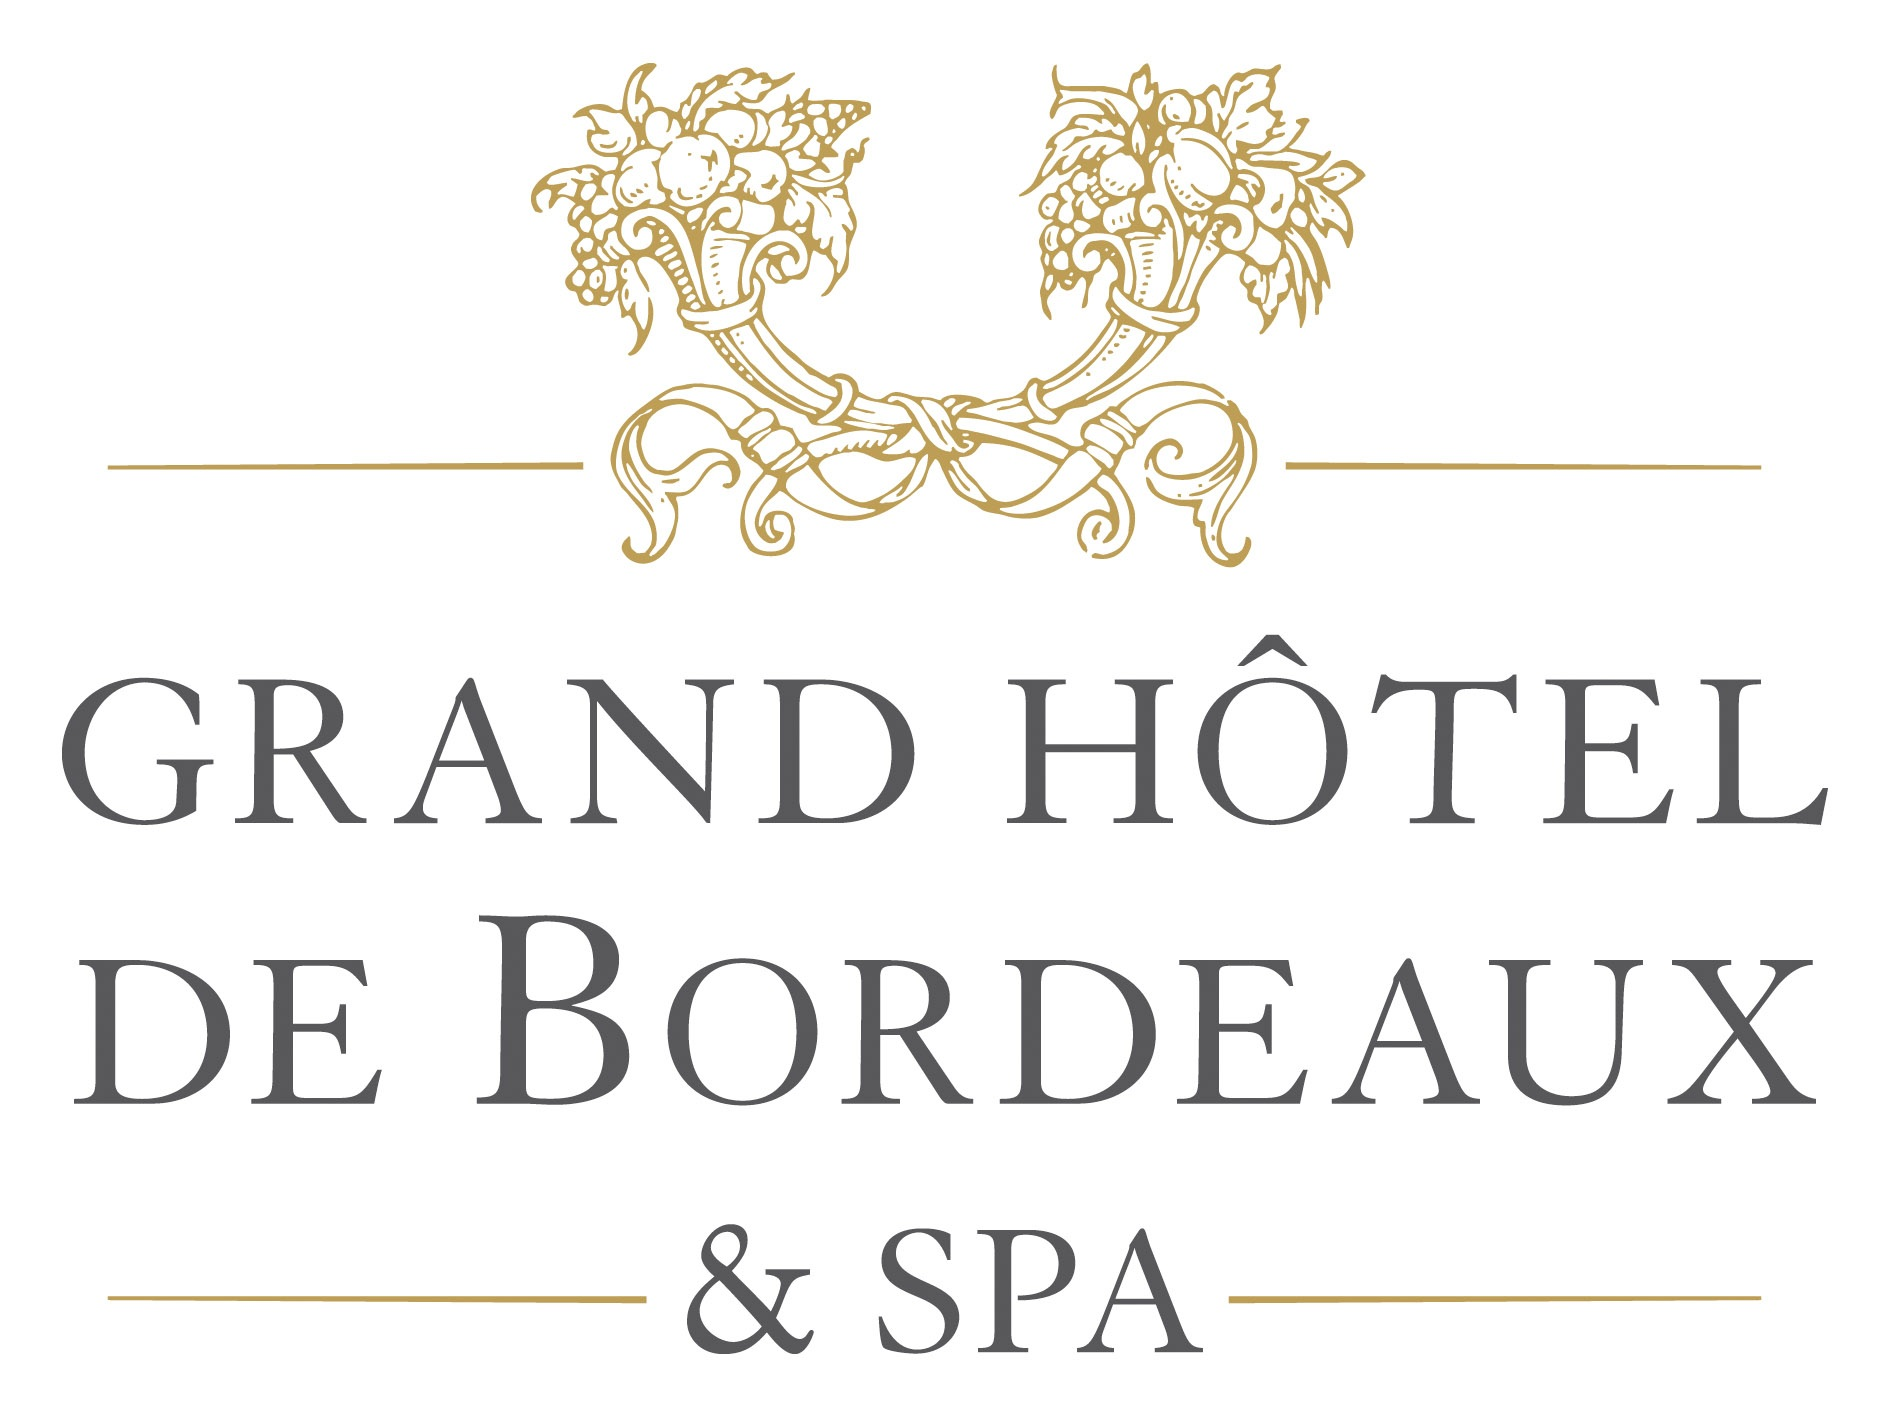 Grand h tel de bordeaux spa - Salon des antiquaires bordeaux 2015 ...